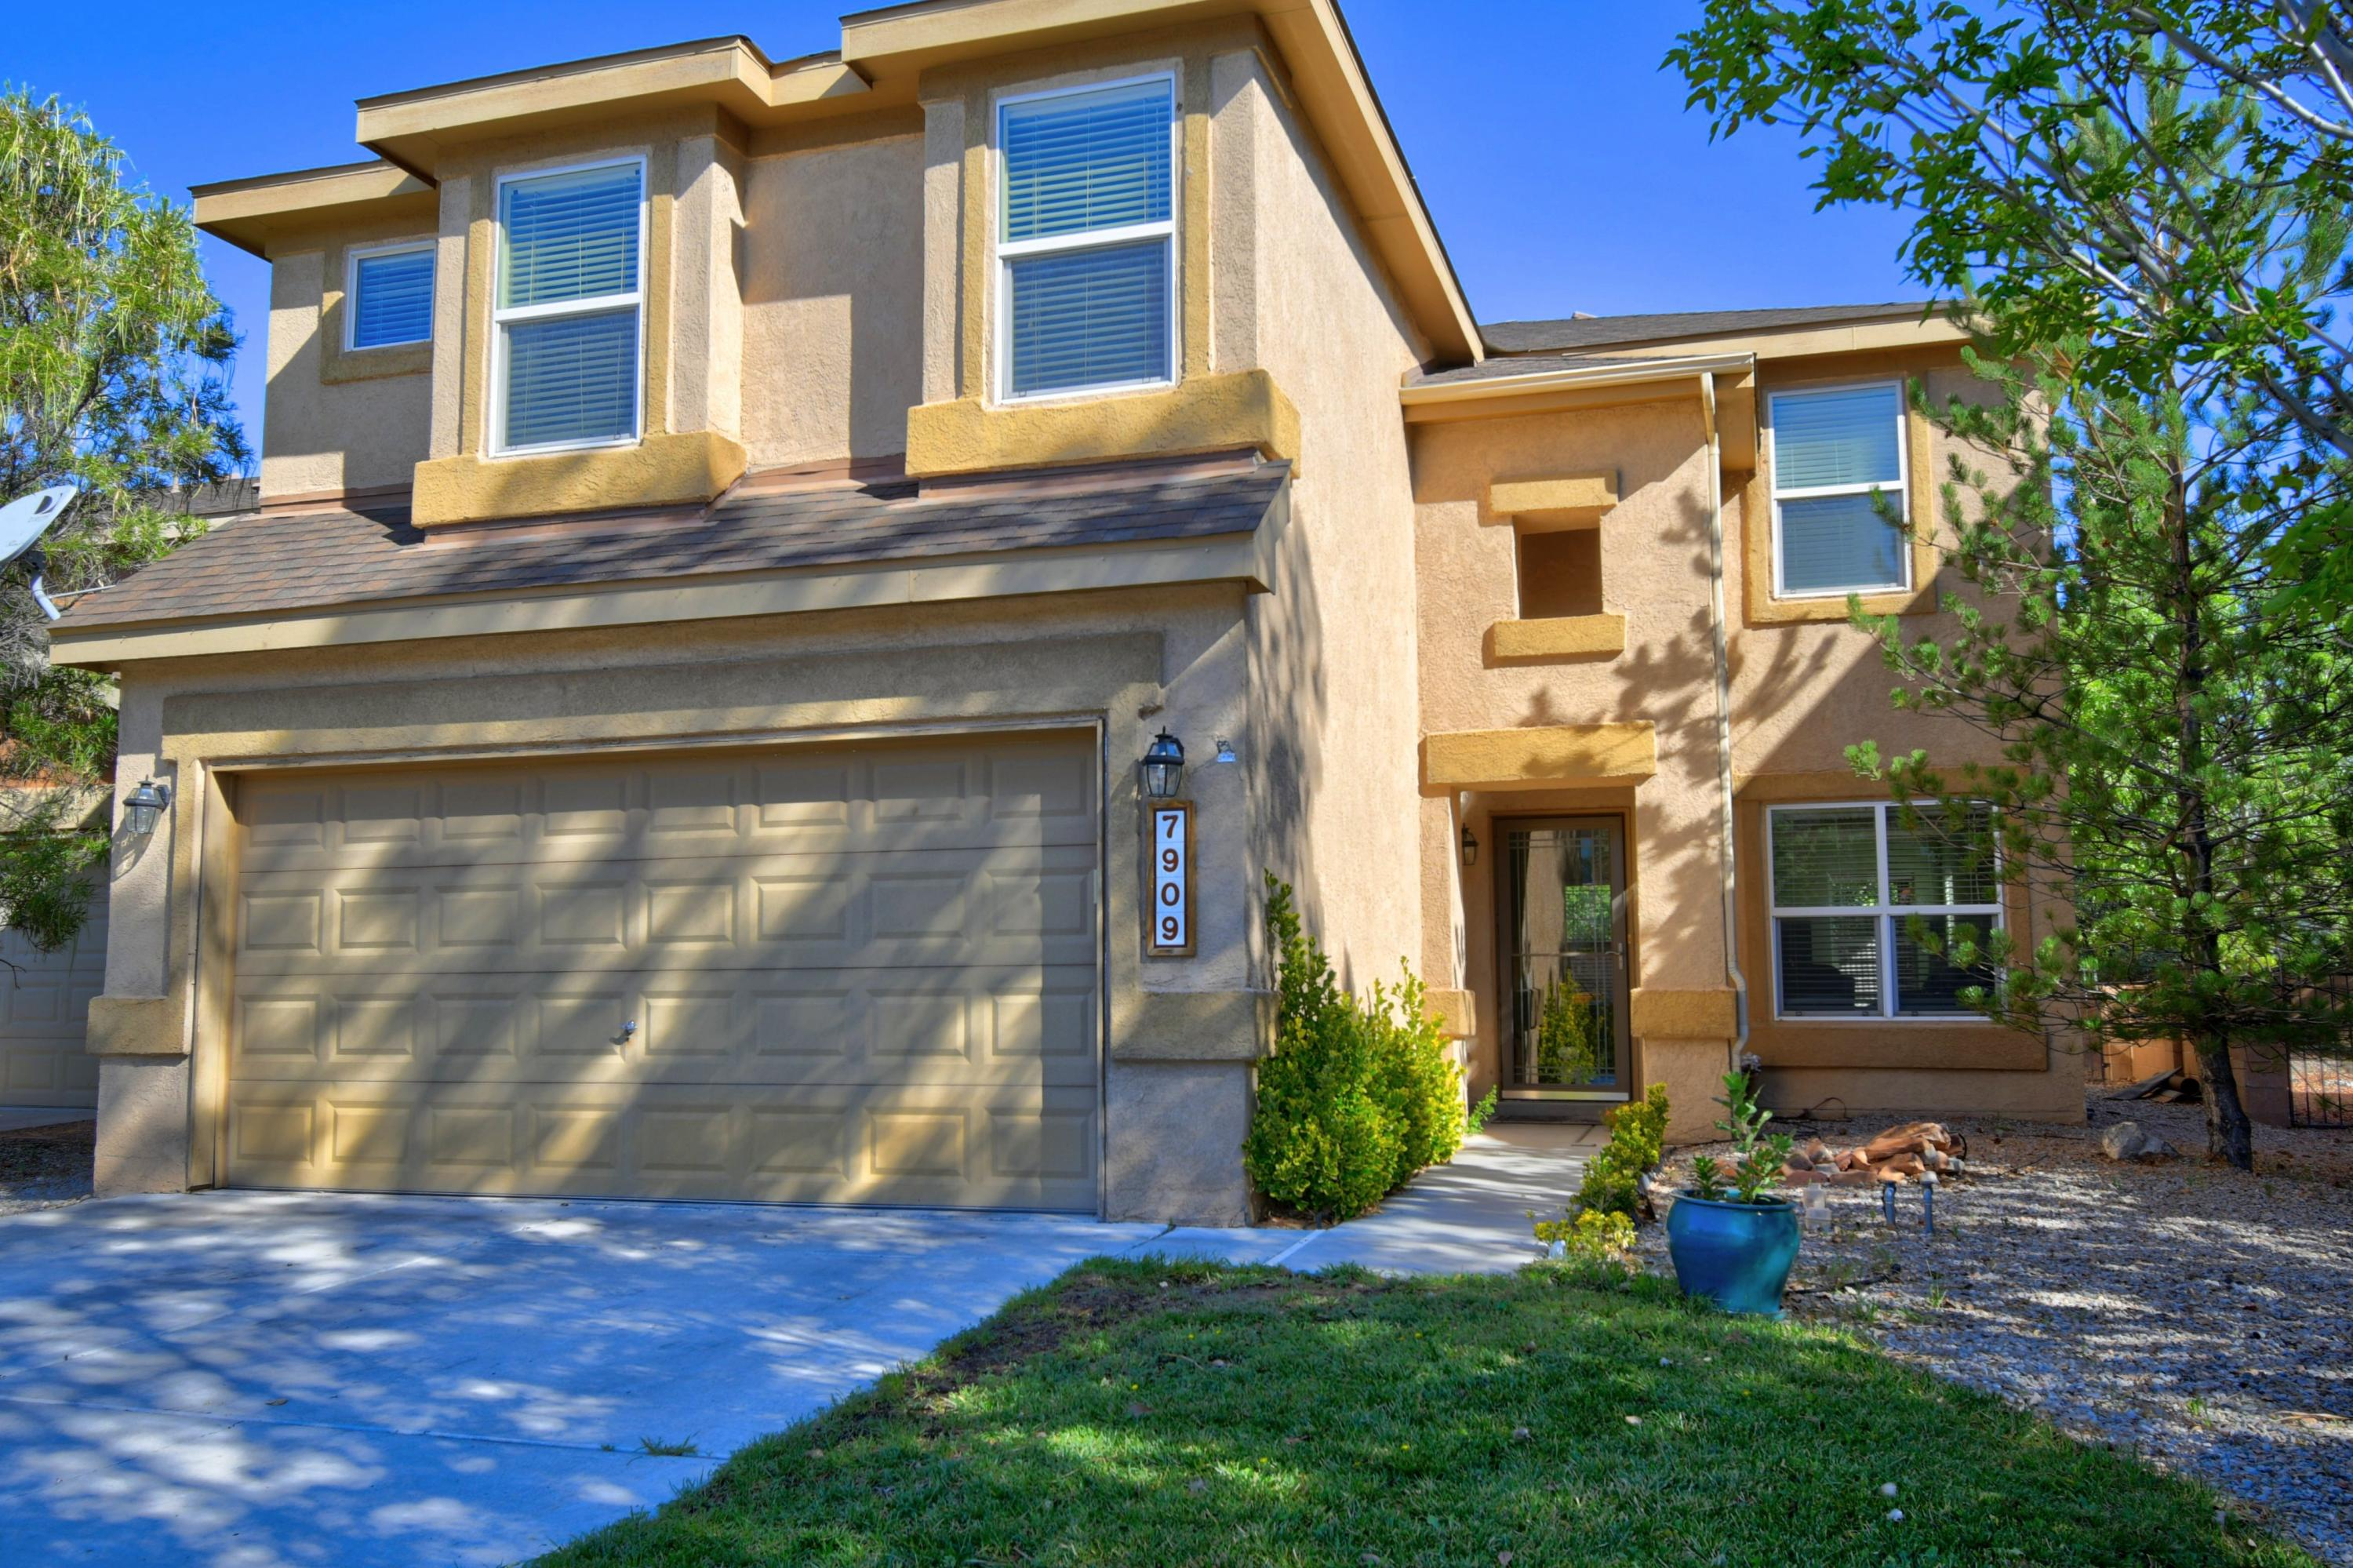 Wonderfully appointed and well loved home in Ventana West! Be welcomed by the open and airy floorplan. Engineered hardwood floors in the living area, tile in all wet areas, and carpet on the stairs, landing, and bedrooms. Carpet professionally cleaned 7/2020. Entertain and spend time with loved ones in the open concept kithchen with overflow to the ''extended living'' outside within the massive covered patio. Property boasts a very large lot with room to suit anyone's needs. Upstairs you will find the large sleeping spaces, all appointed with walk-in closets. Unattaced fireplace in master bedroom does convey, not to mention all appliances! New water heater installed 02/2020! Great value in desirable school district. Audio and video surveillance being used.